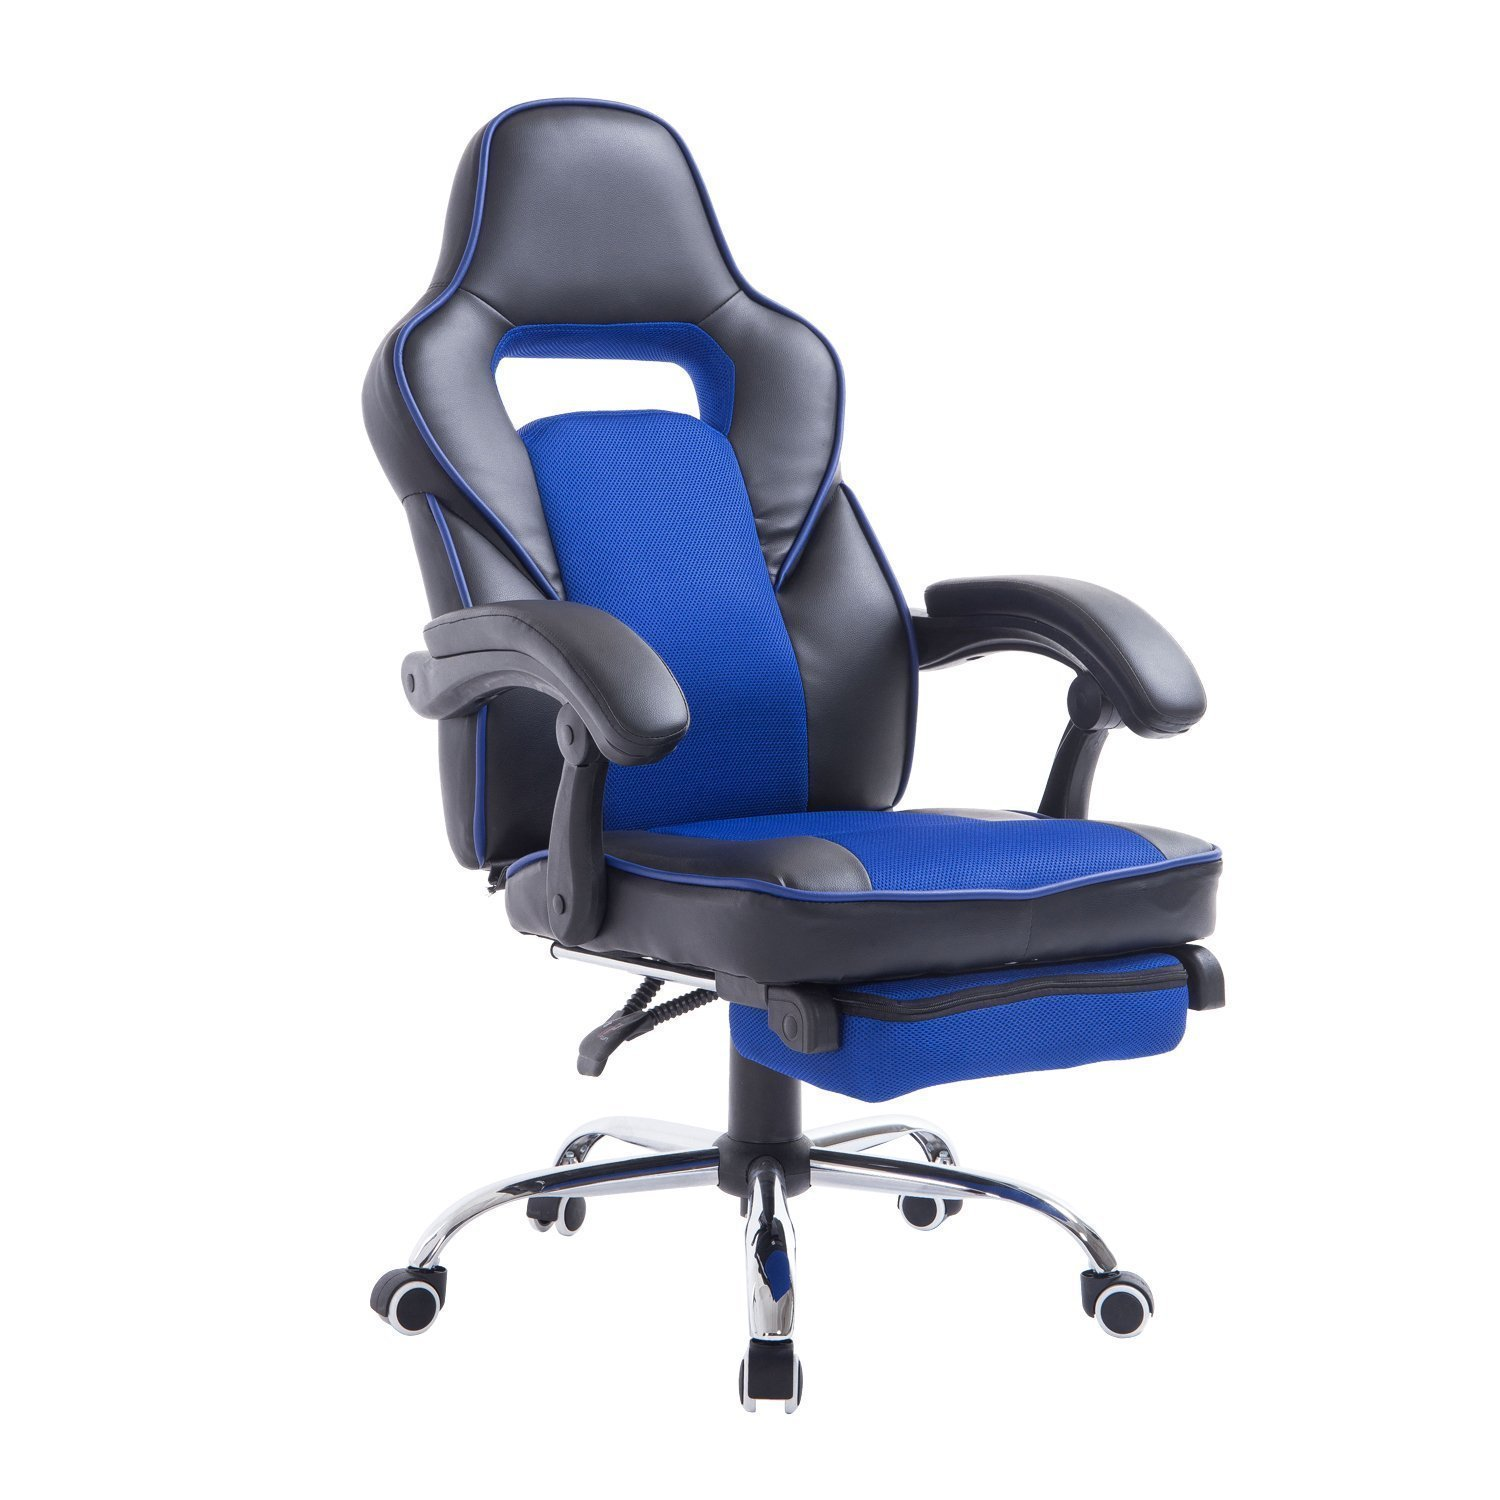 office chair high seat best chairs inc power lift recliner parts top 10 reclining reviewed updated guide for 2018 homcom race car style back pu leather with footrest blue and